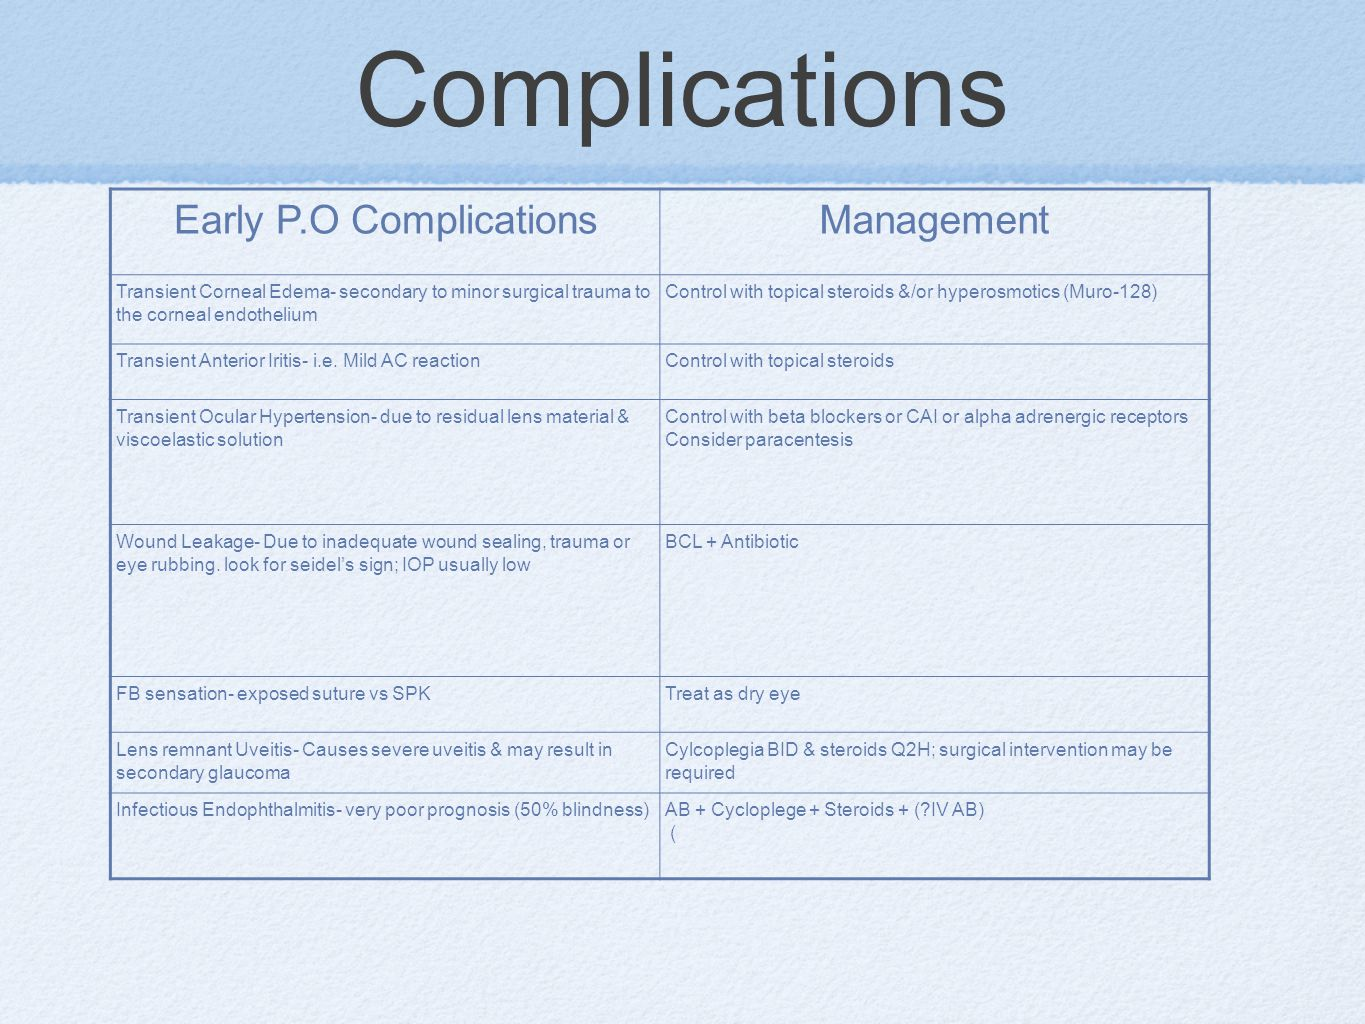 Early P.O Complications